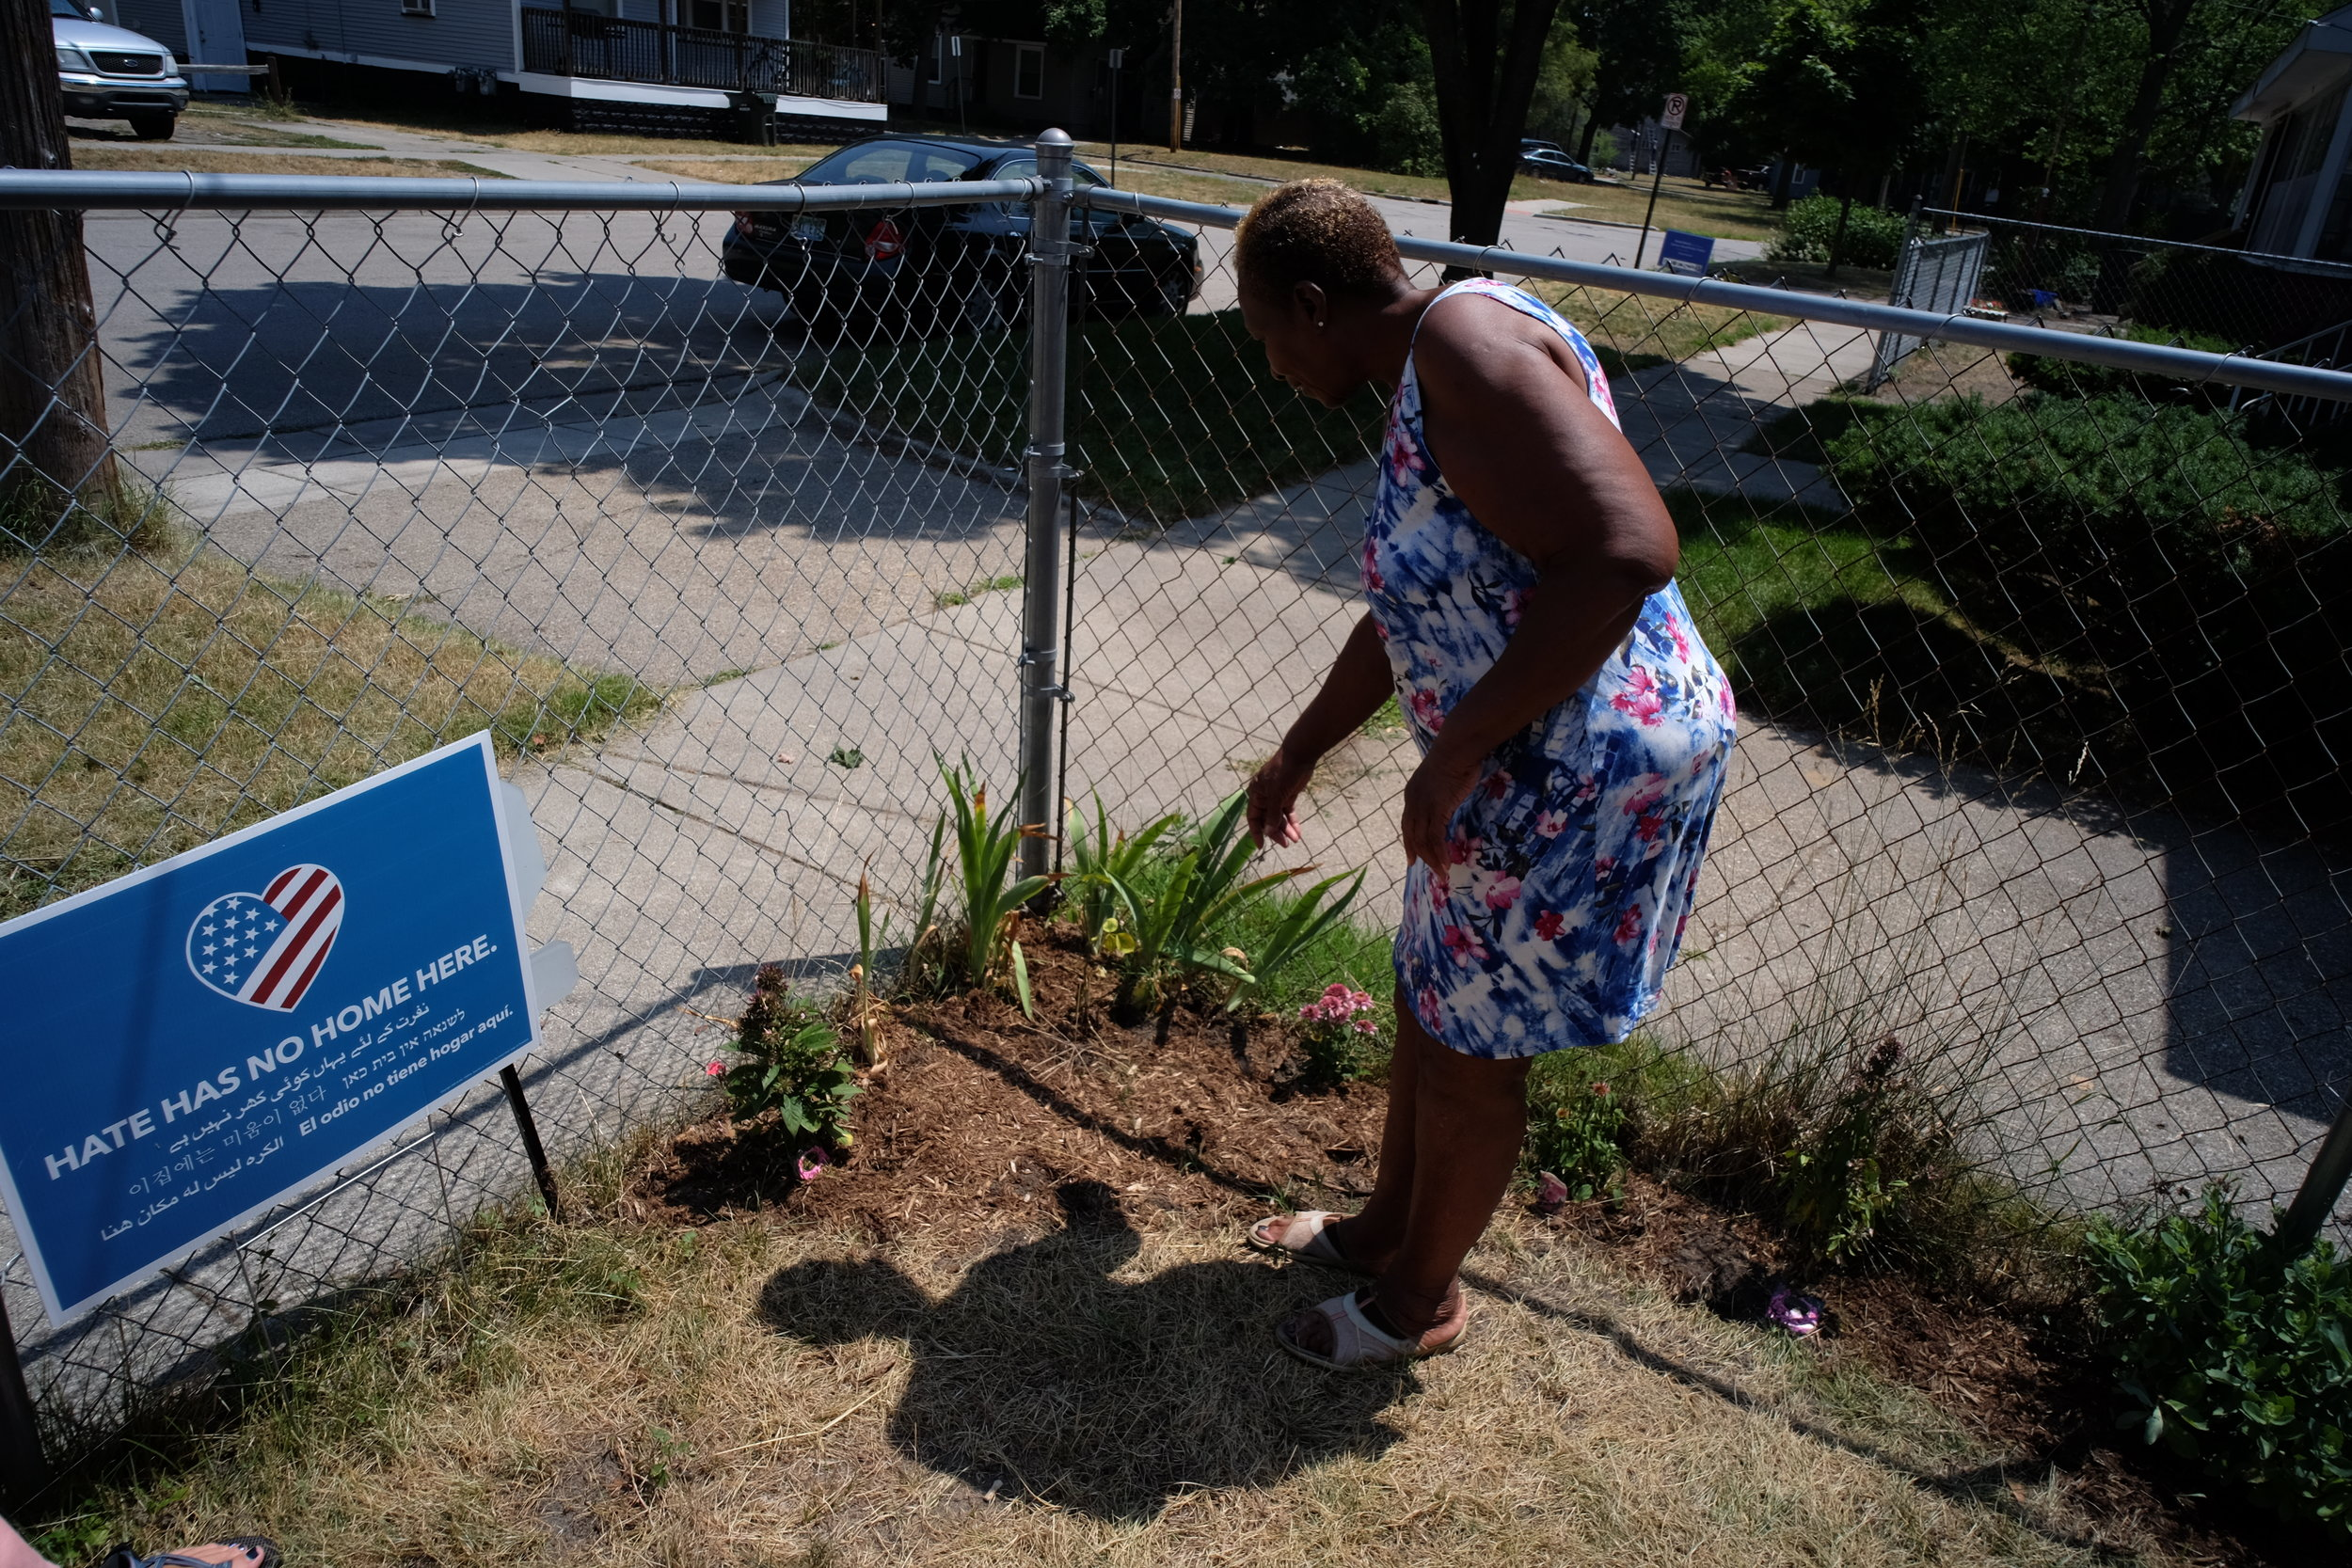 Volunteers transplanted a rose bush for Ms.Craig